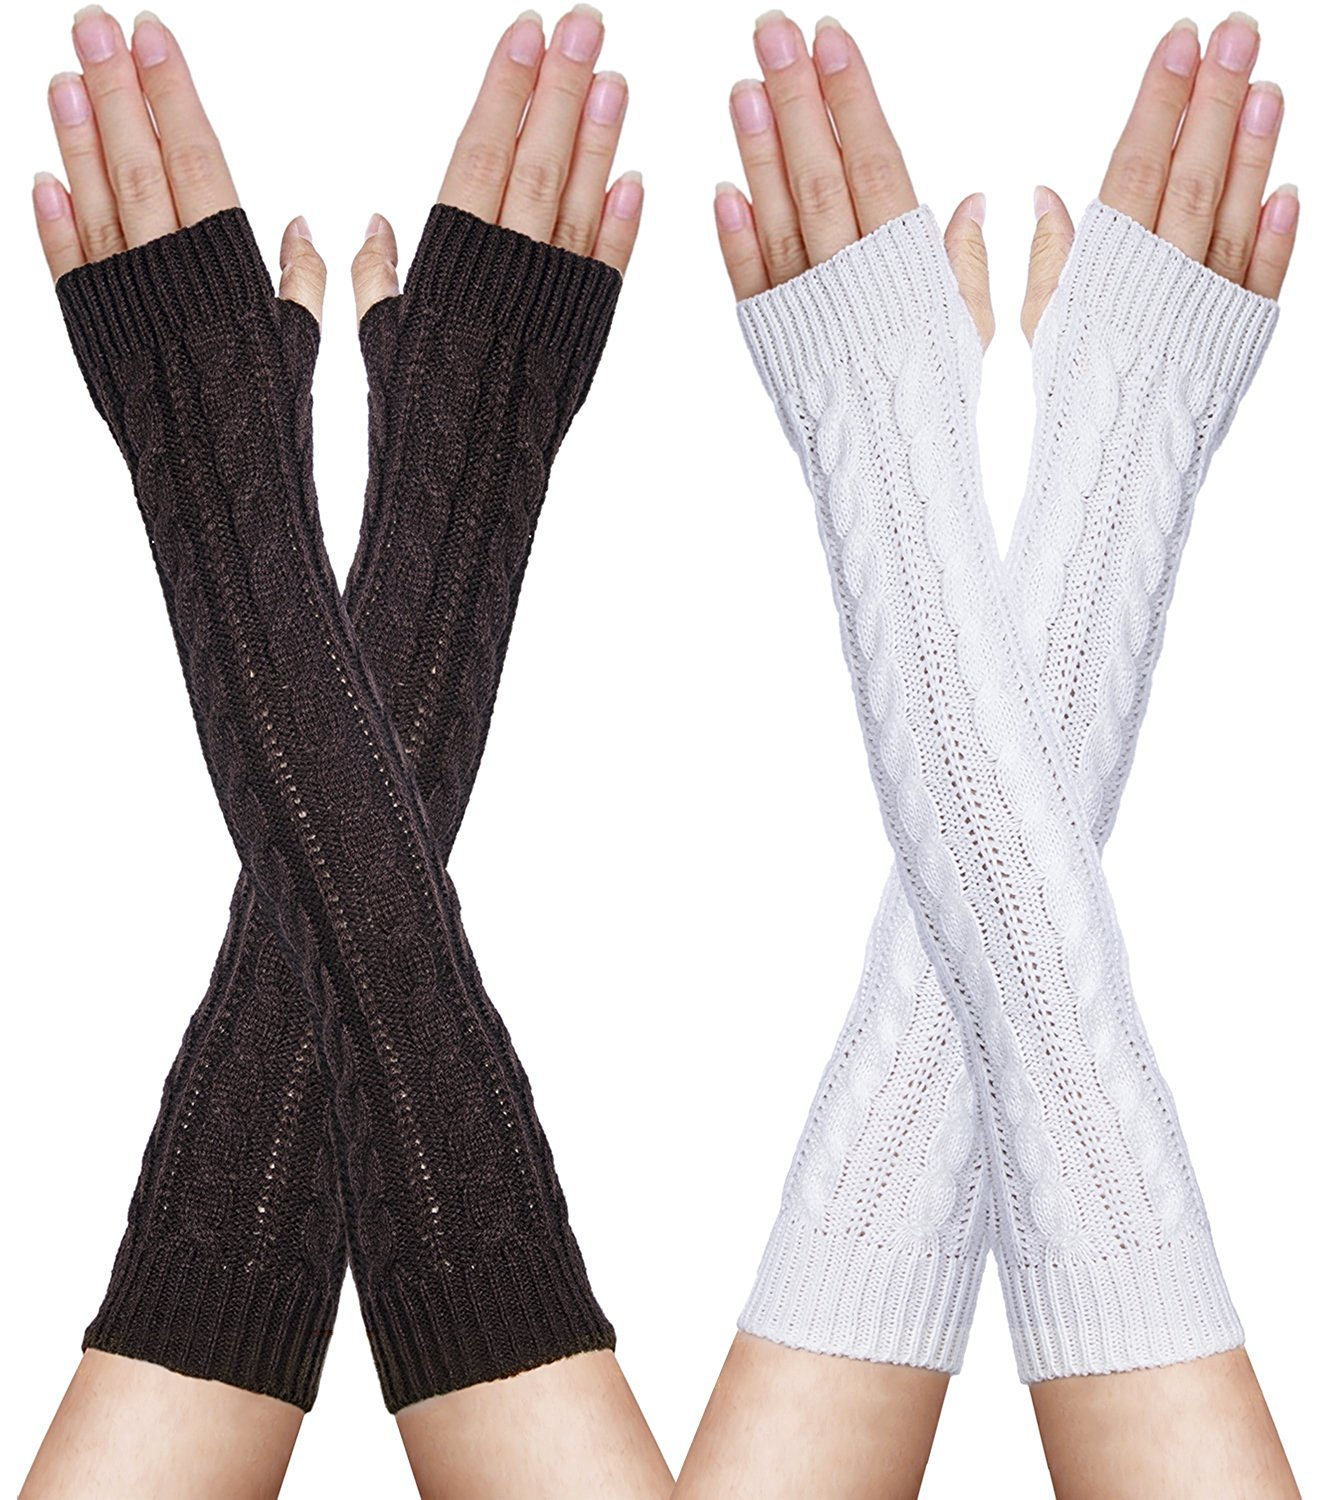 011dcf70c Oryer 2 Pairs Womens Winter Knit Long Fingerless Gloves - Thumbhole Arm  Warmers